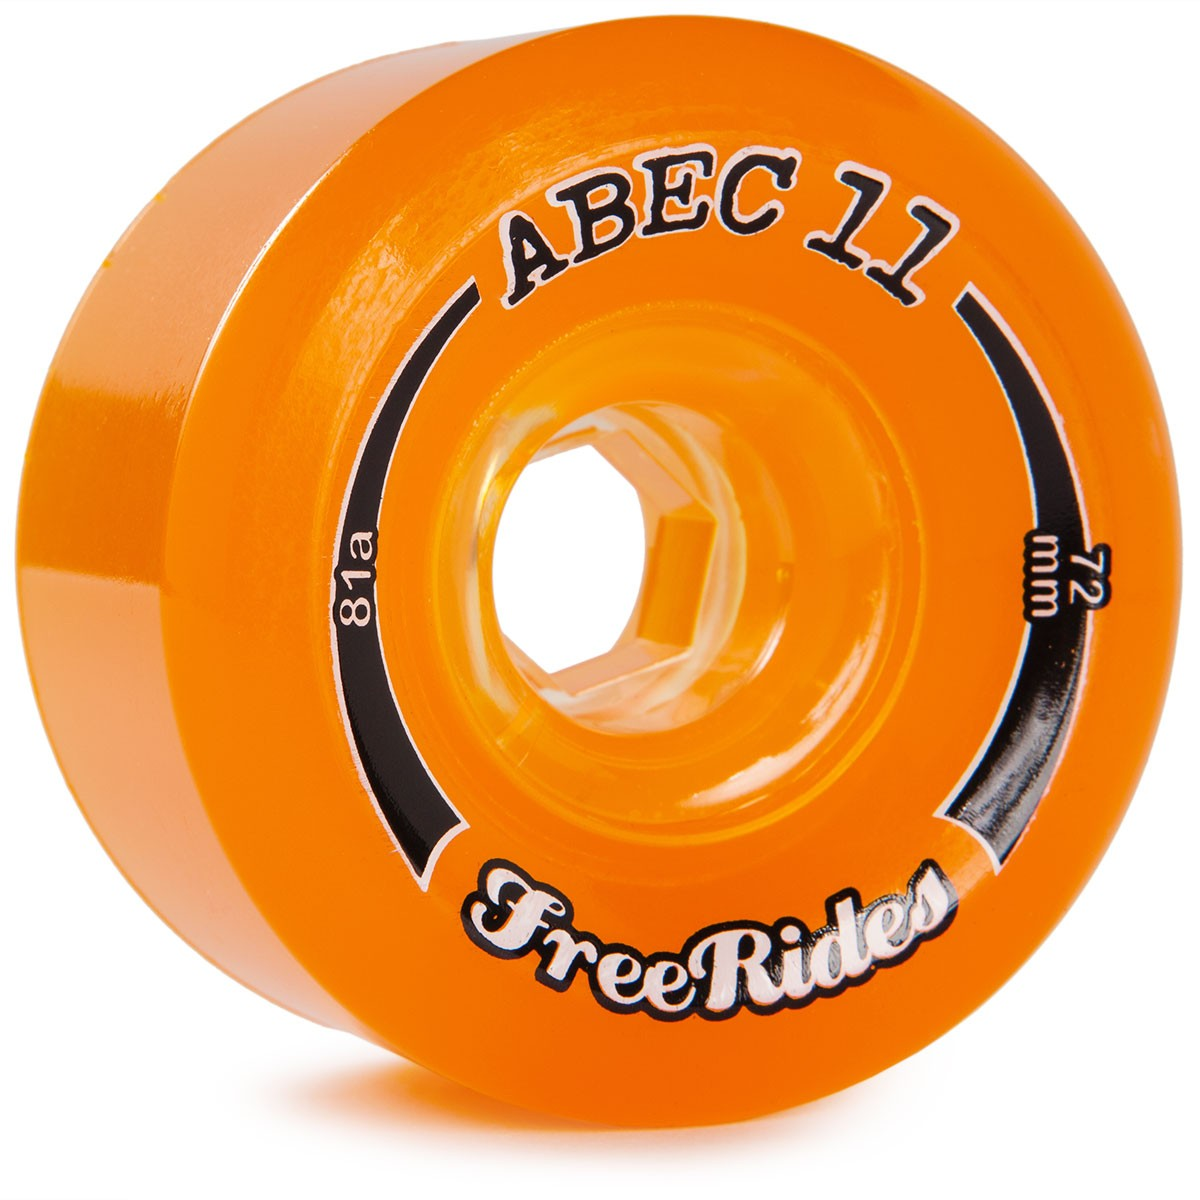 Abec 11 FreeRides Longboard Wheels - 72mm